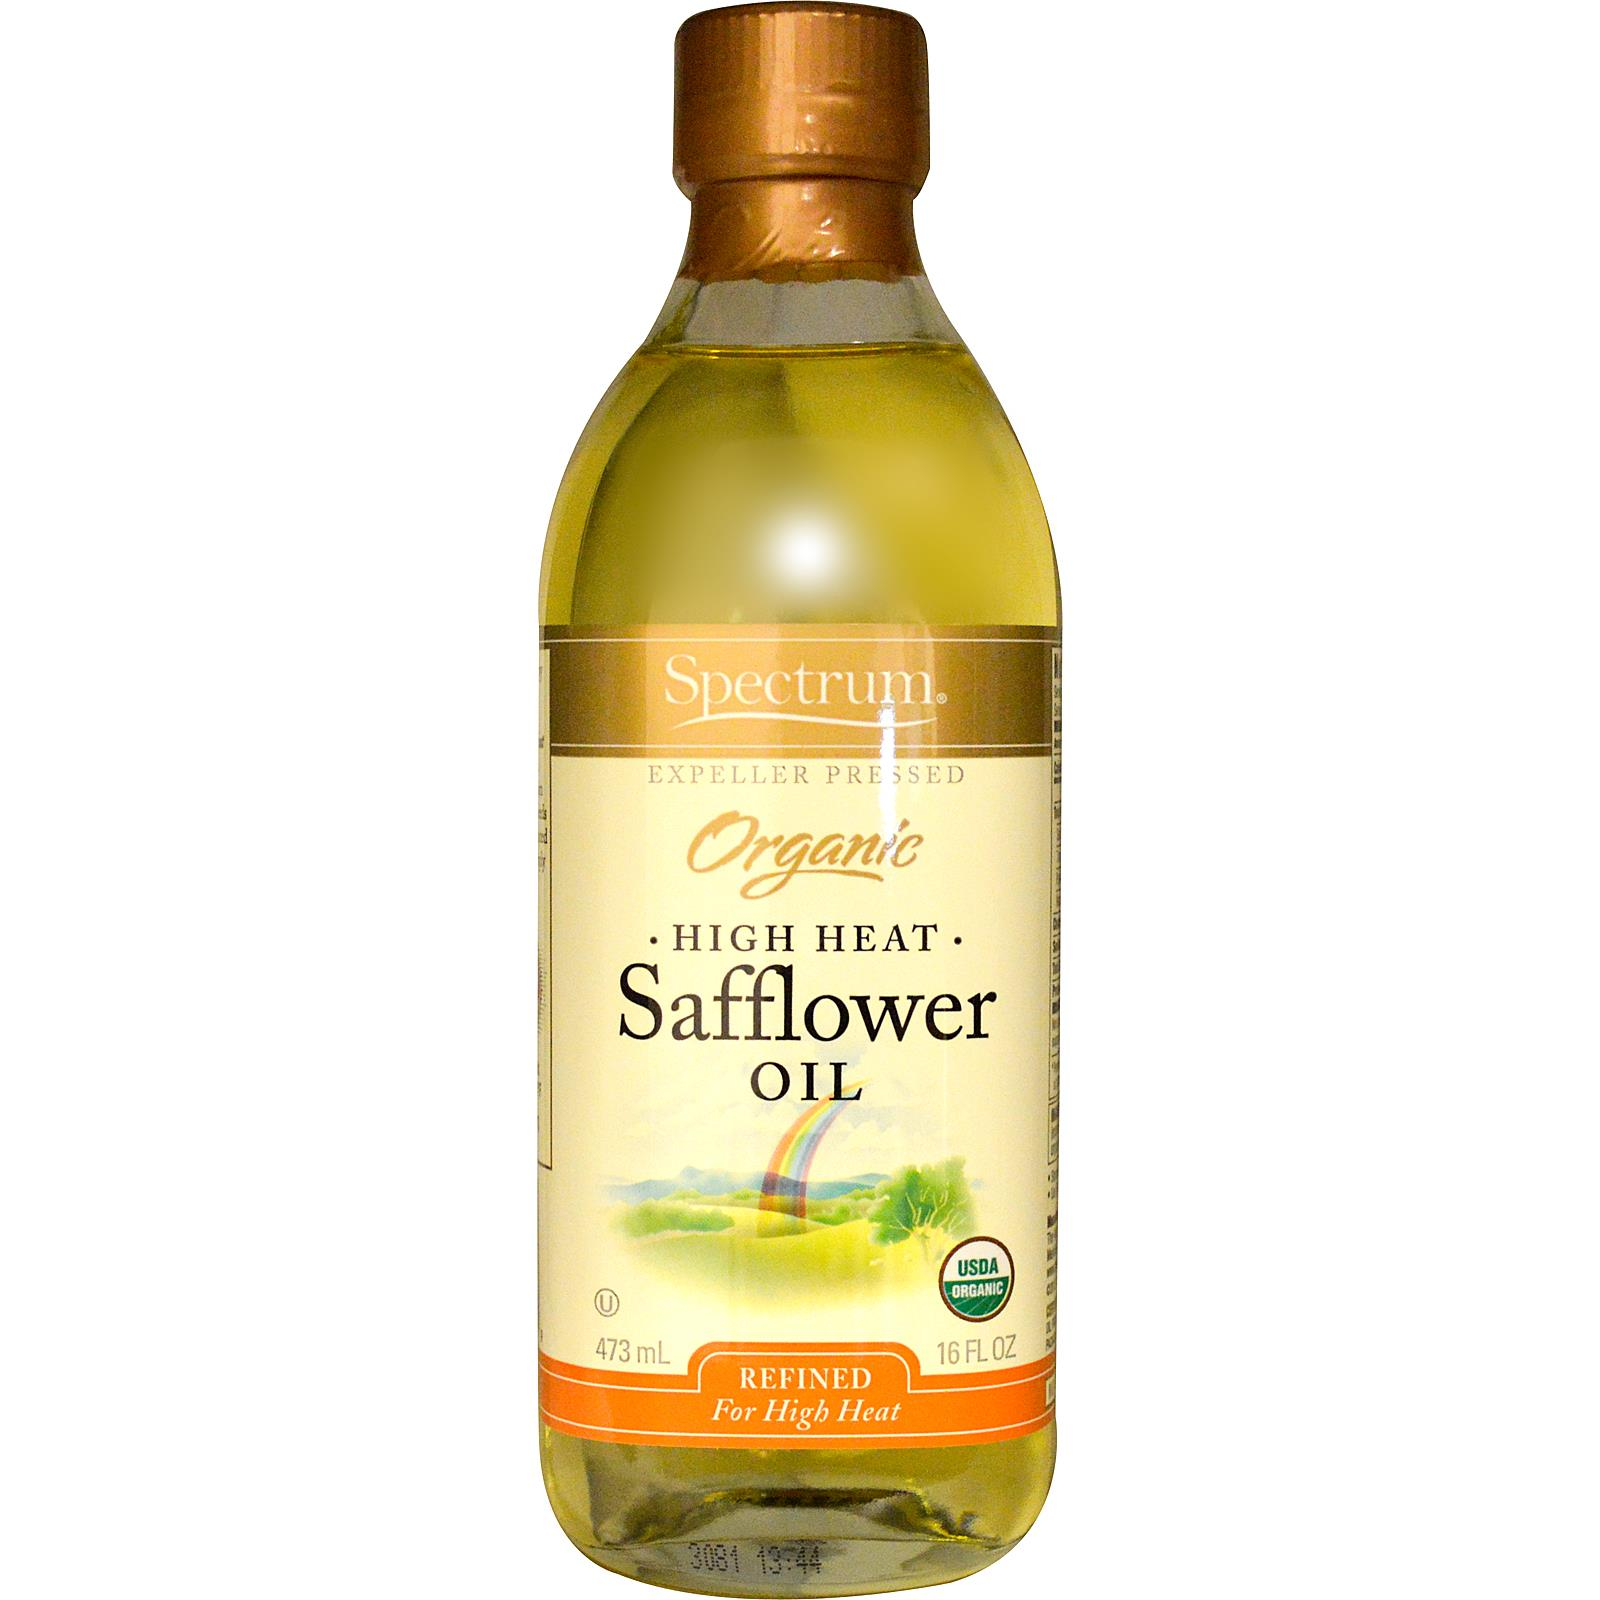 CLA Safflower Oil Reviews - Warning - Critical Side Effects!